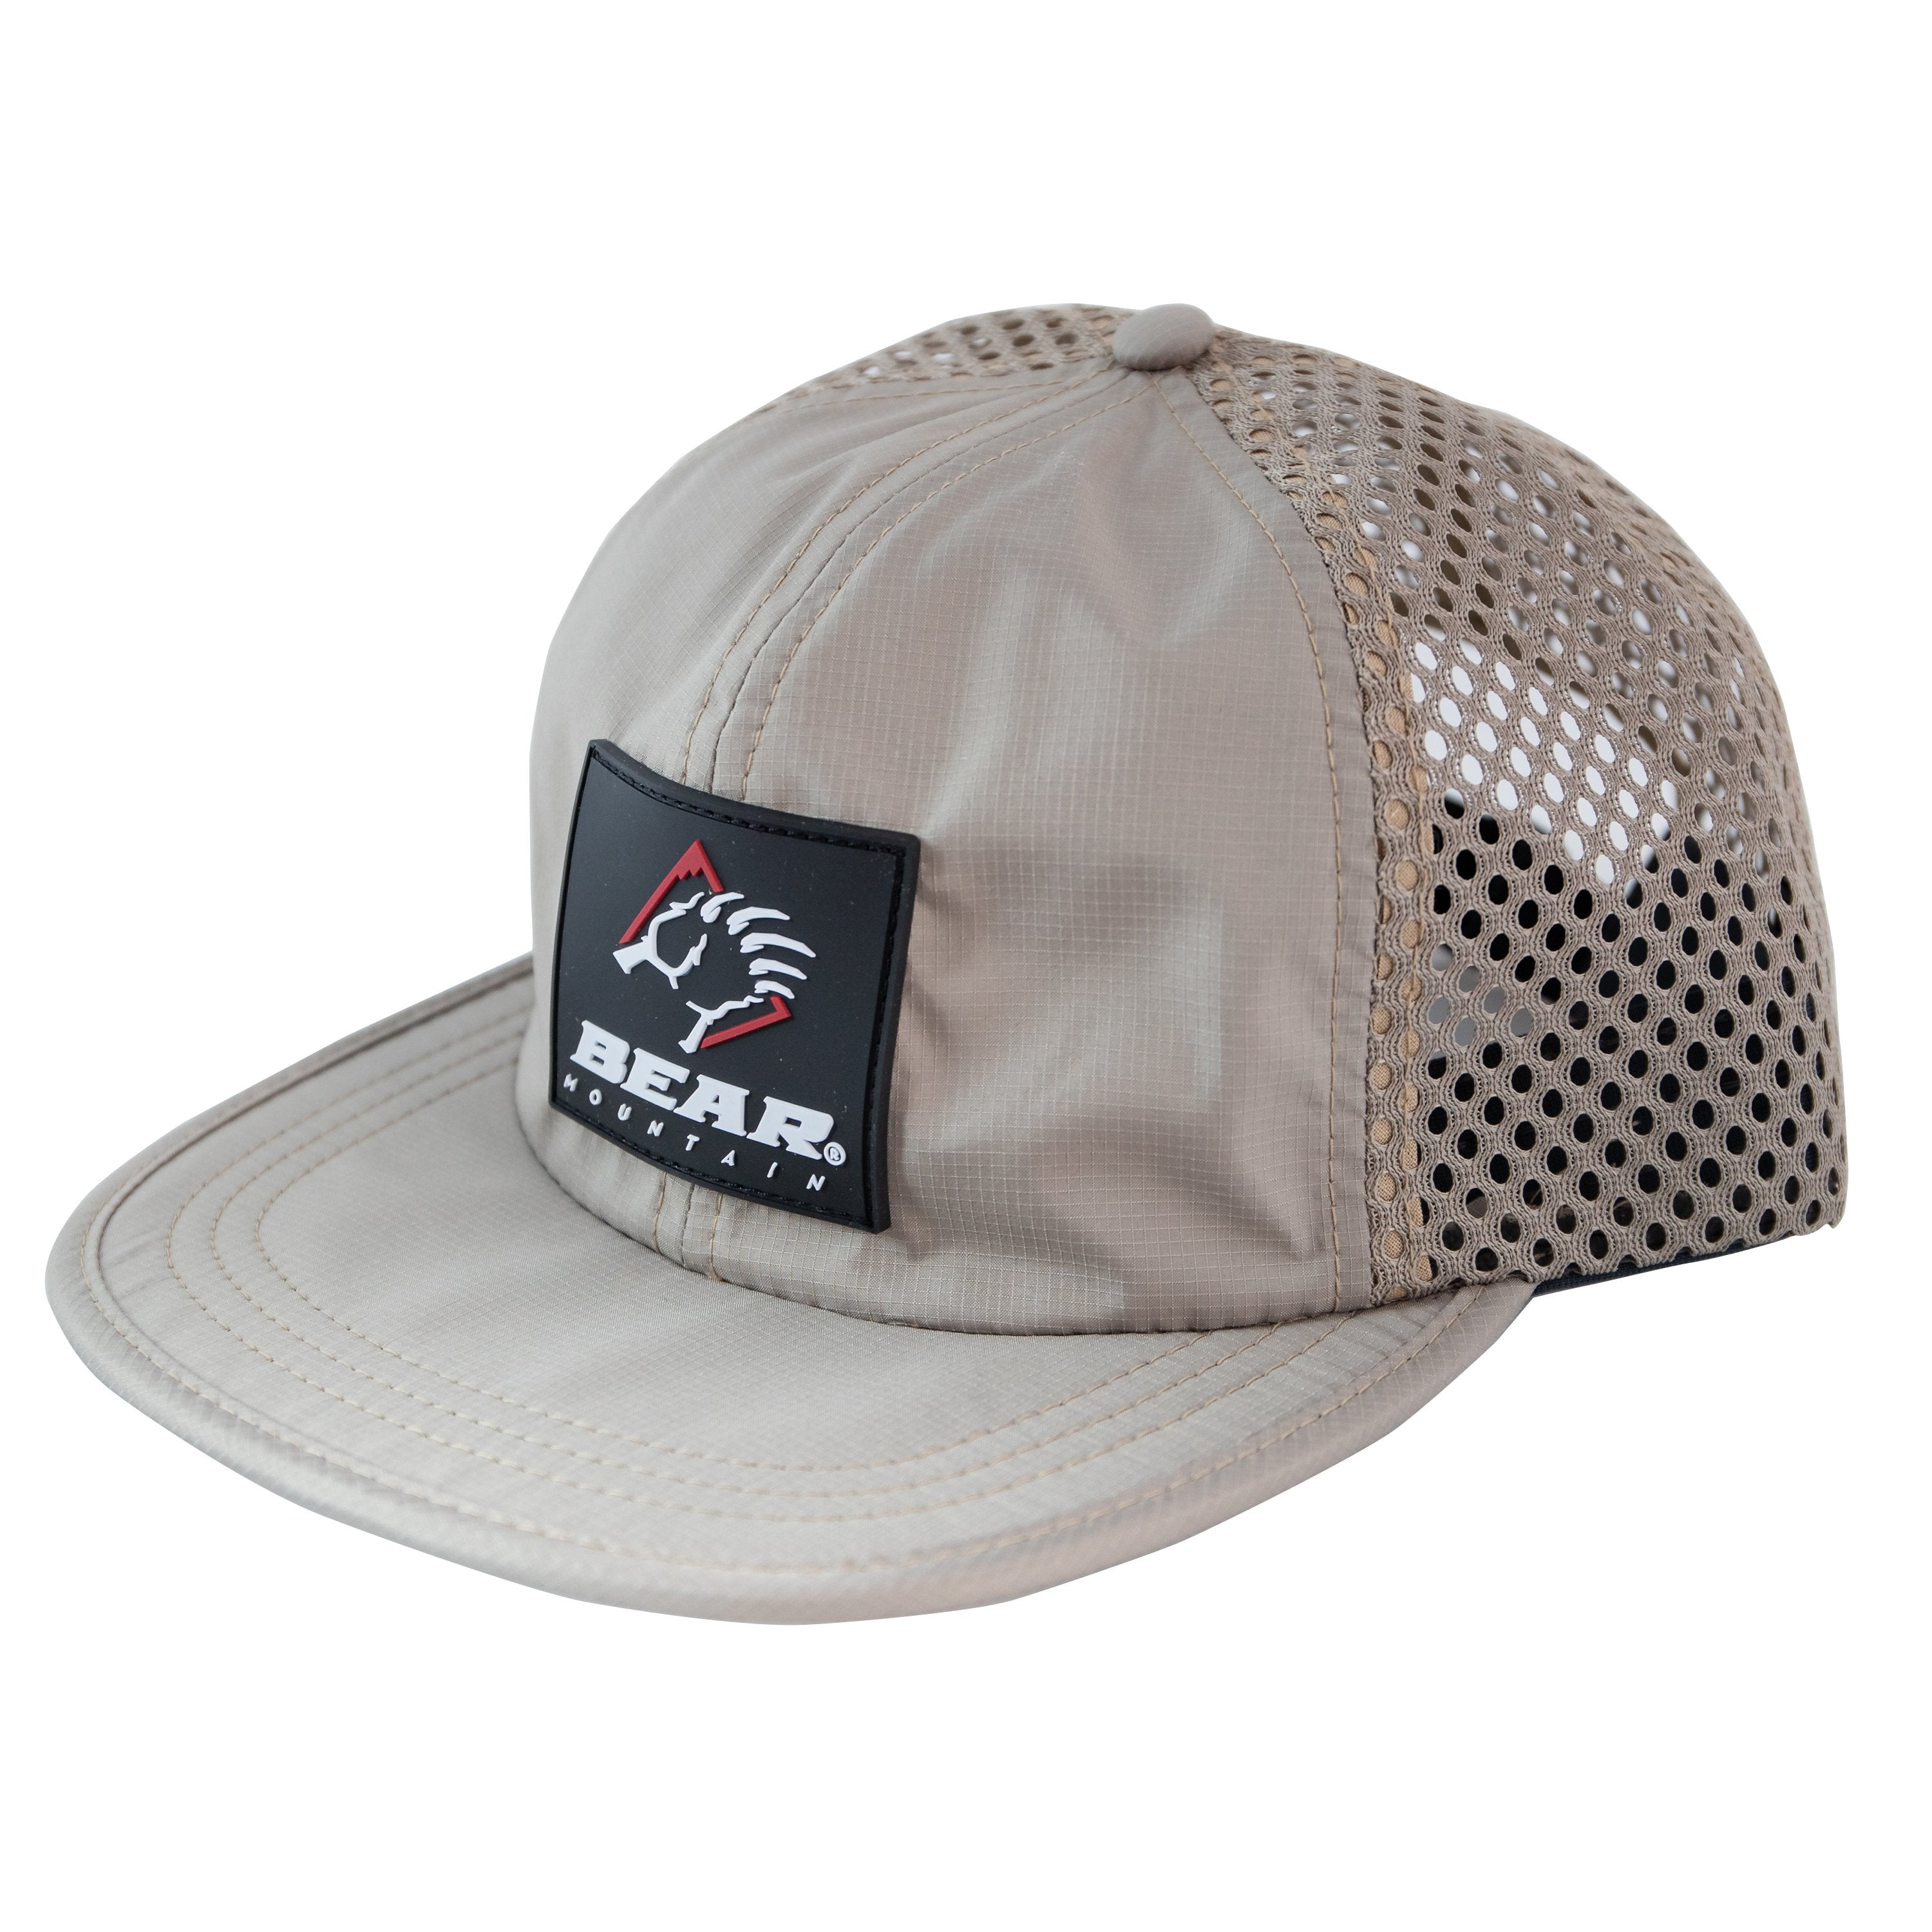 Bear Mountain Perforated Hat